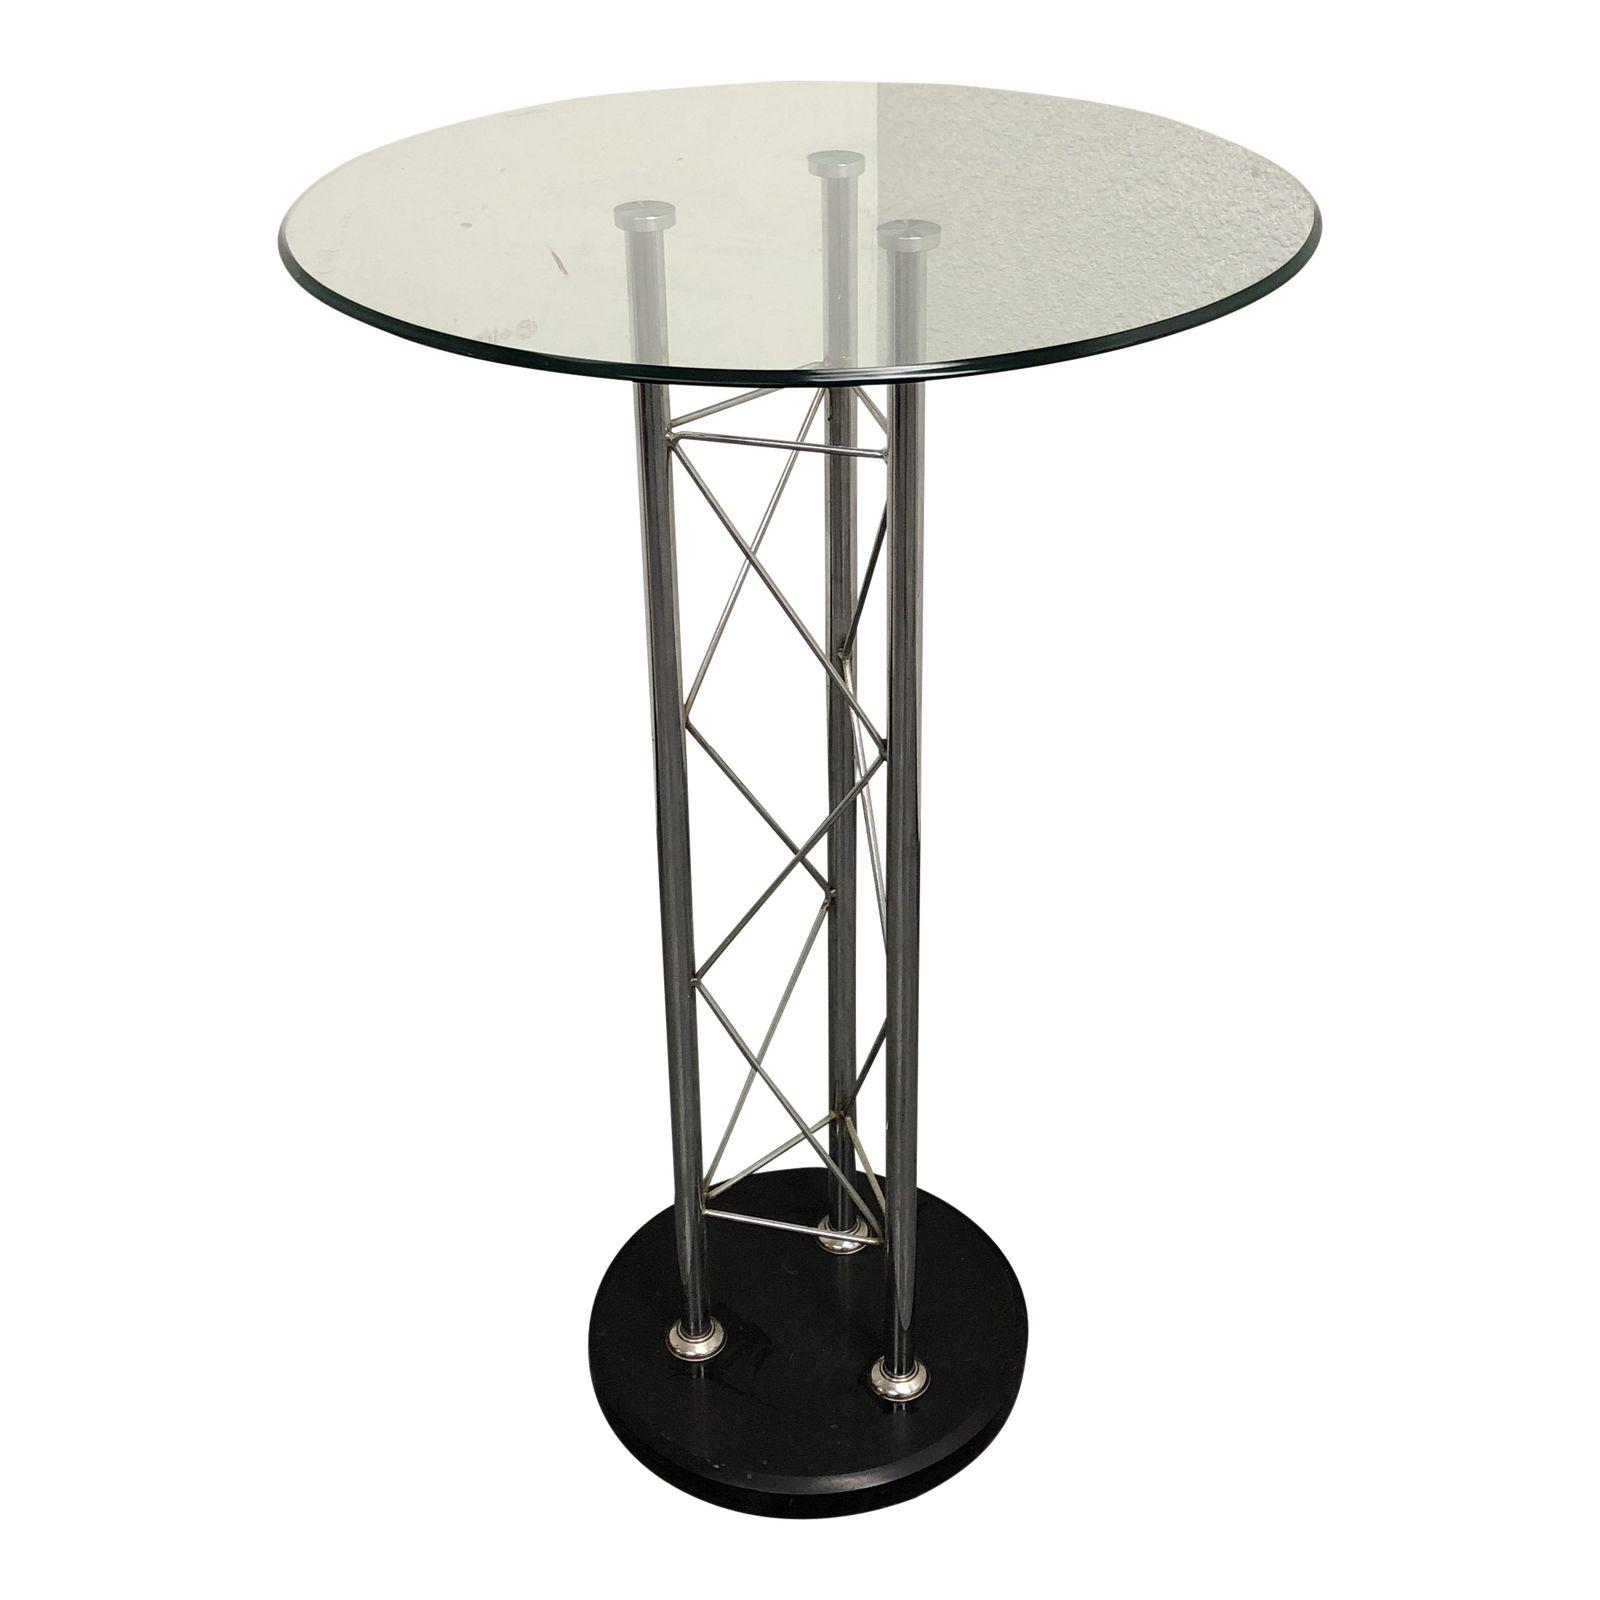 Bon Modern Round Bar Height Glass Top Table. SOLD!